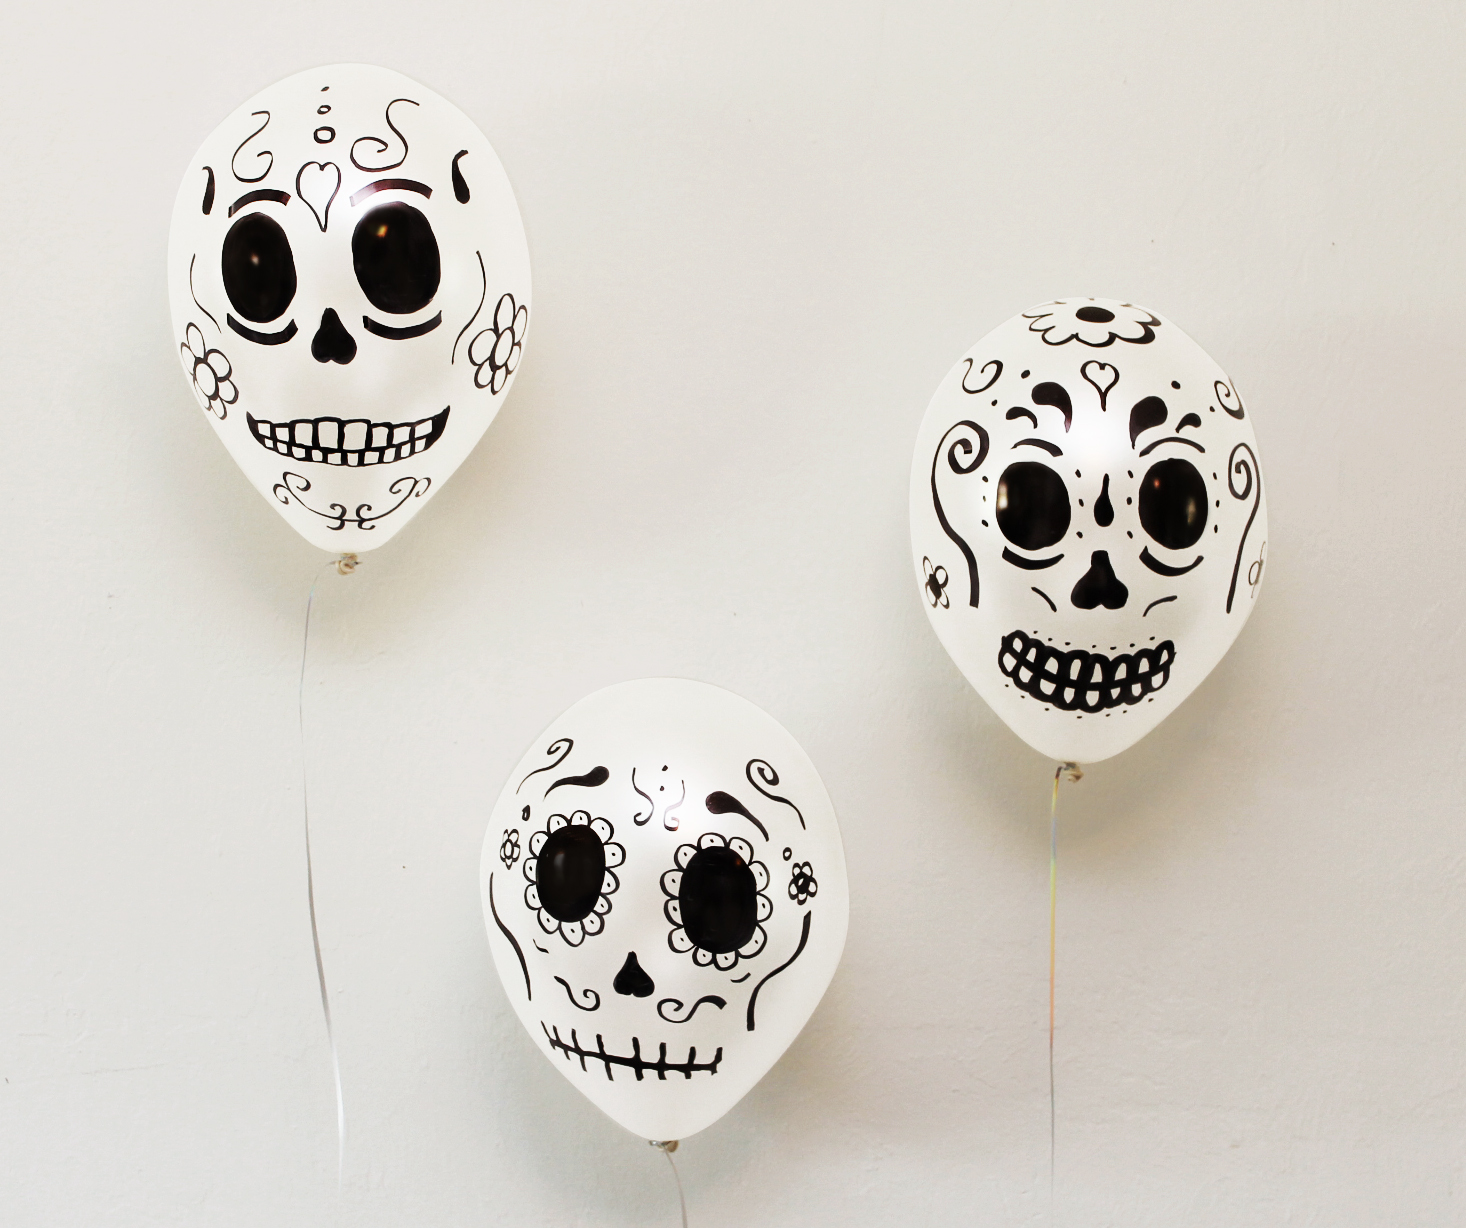 Day of the Dead DIY, DIY Projects, Day of the Dead Party Ideas, Fall Holiday, Halloween, Halloween Party Ideas, DIY Holiday Projects, How to Celebrate Day of the Dead